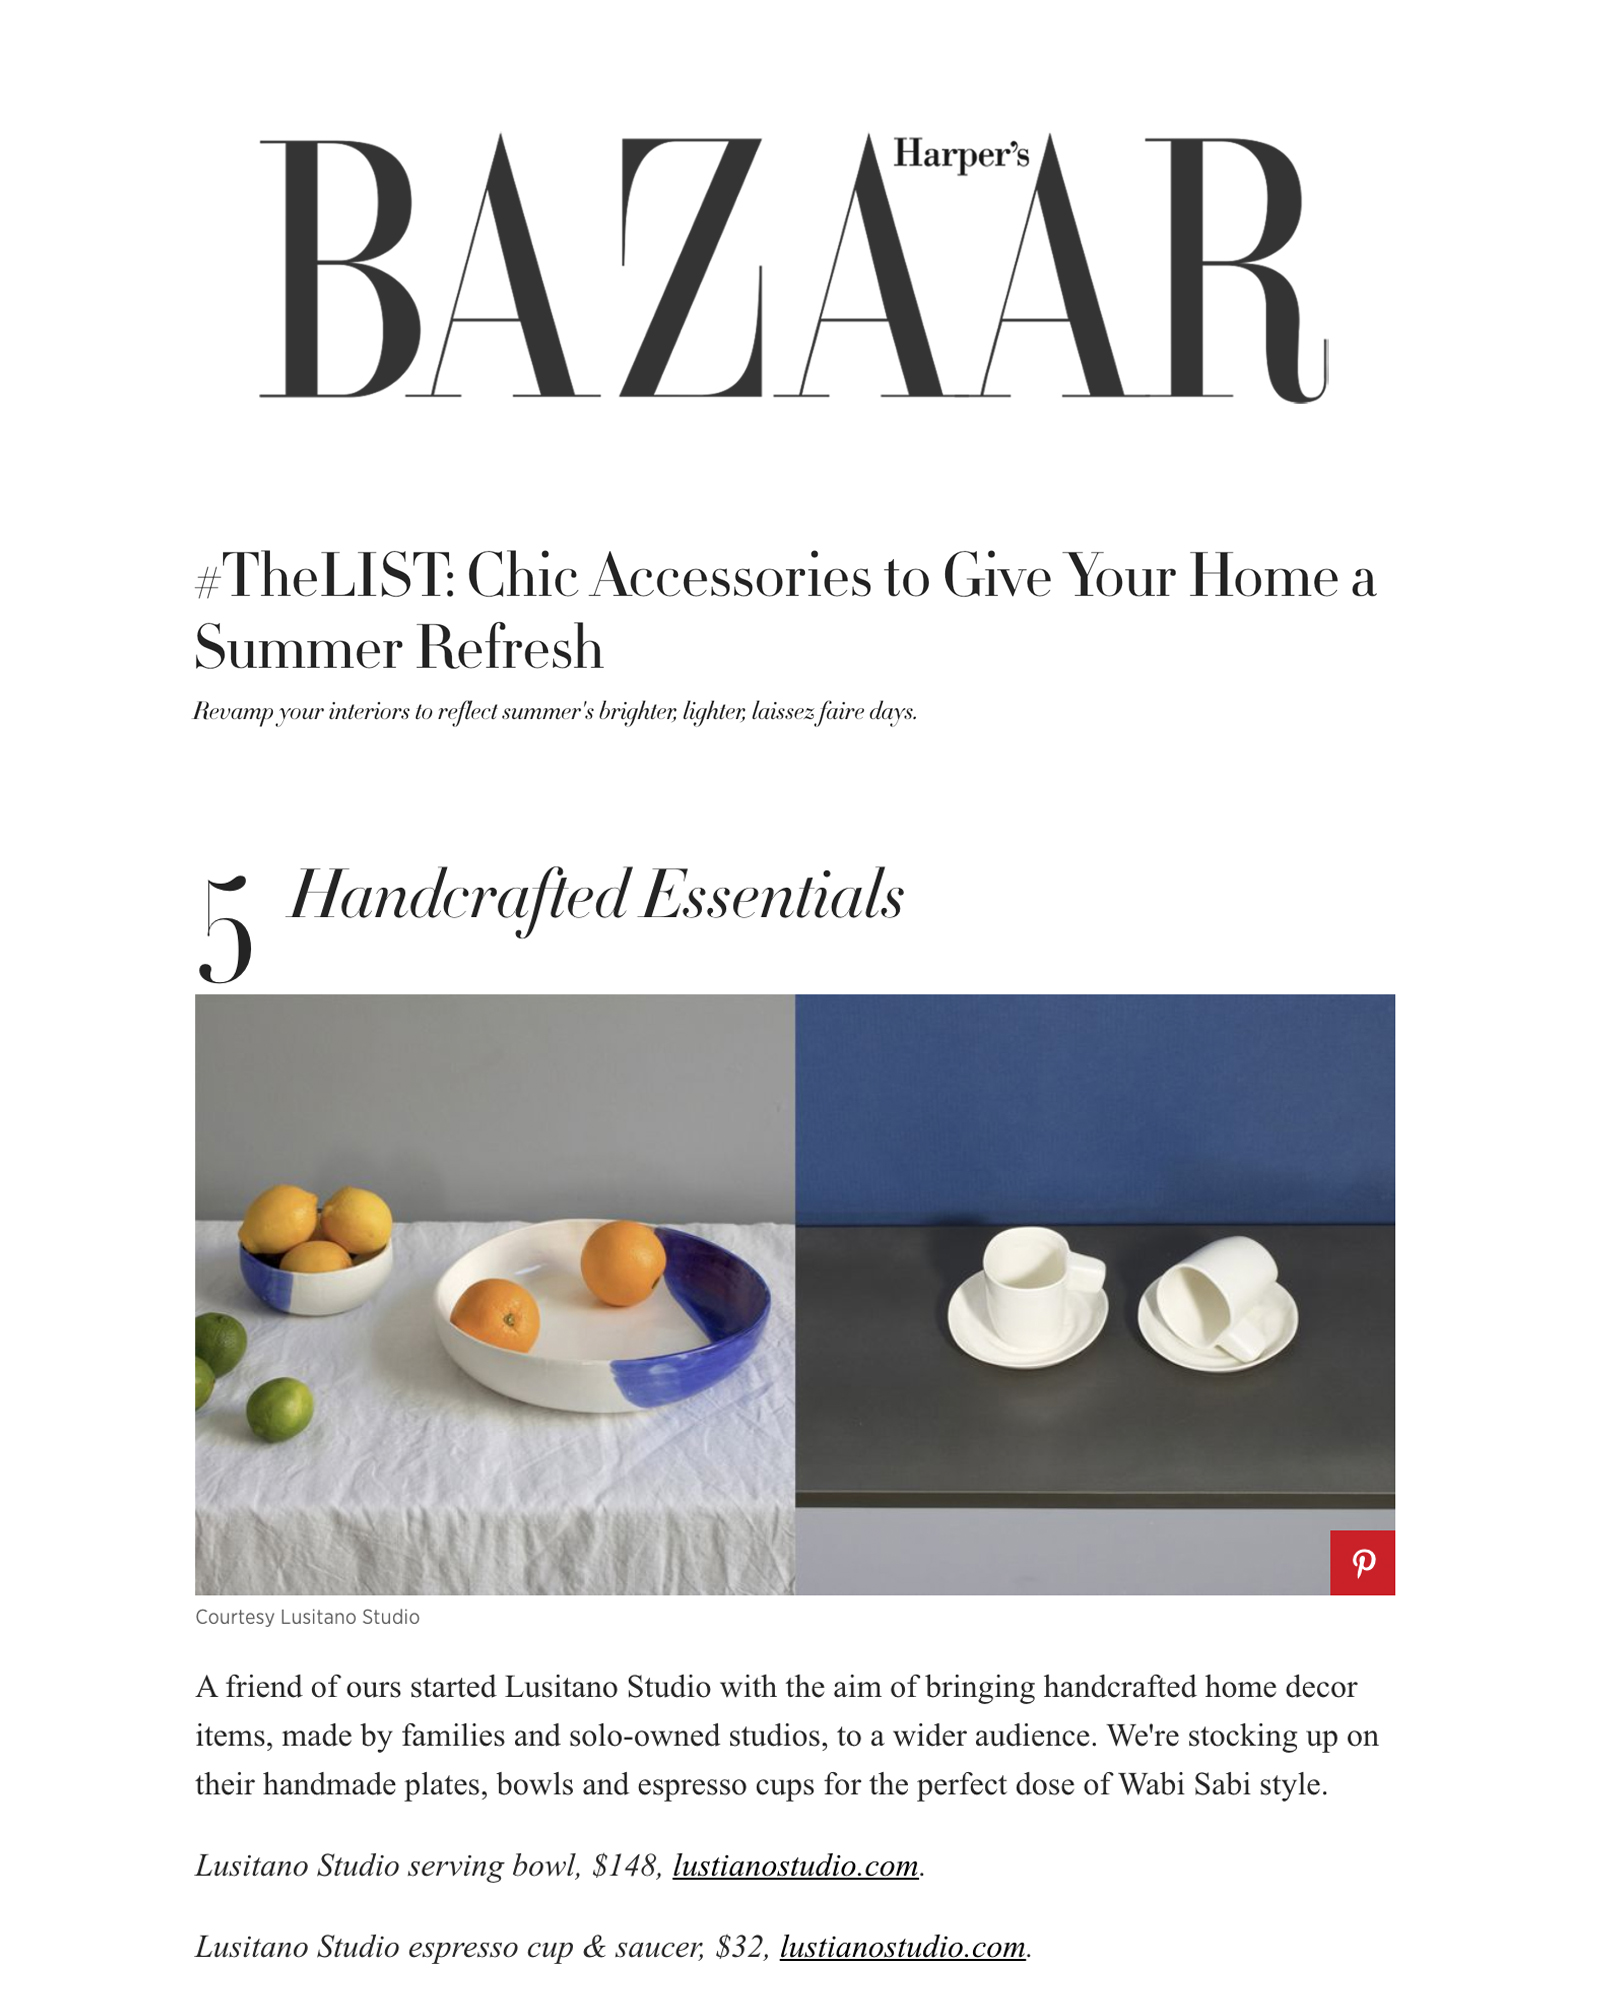 LusitanoStudio_Press_HarpersBazaar.jpg